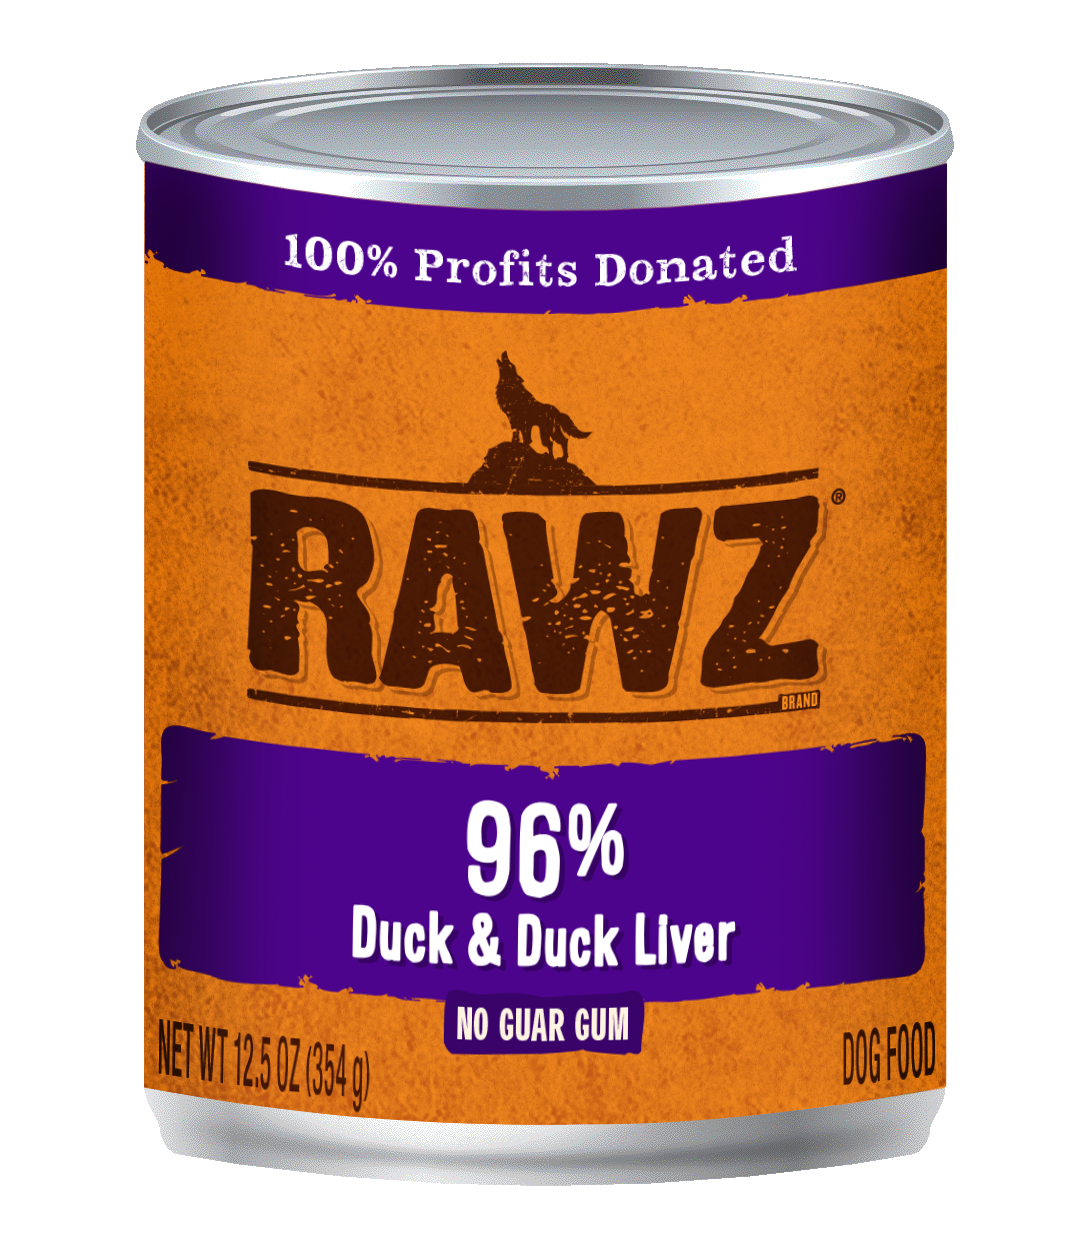 Dog_DuckLiv rawz can.png